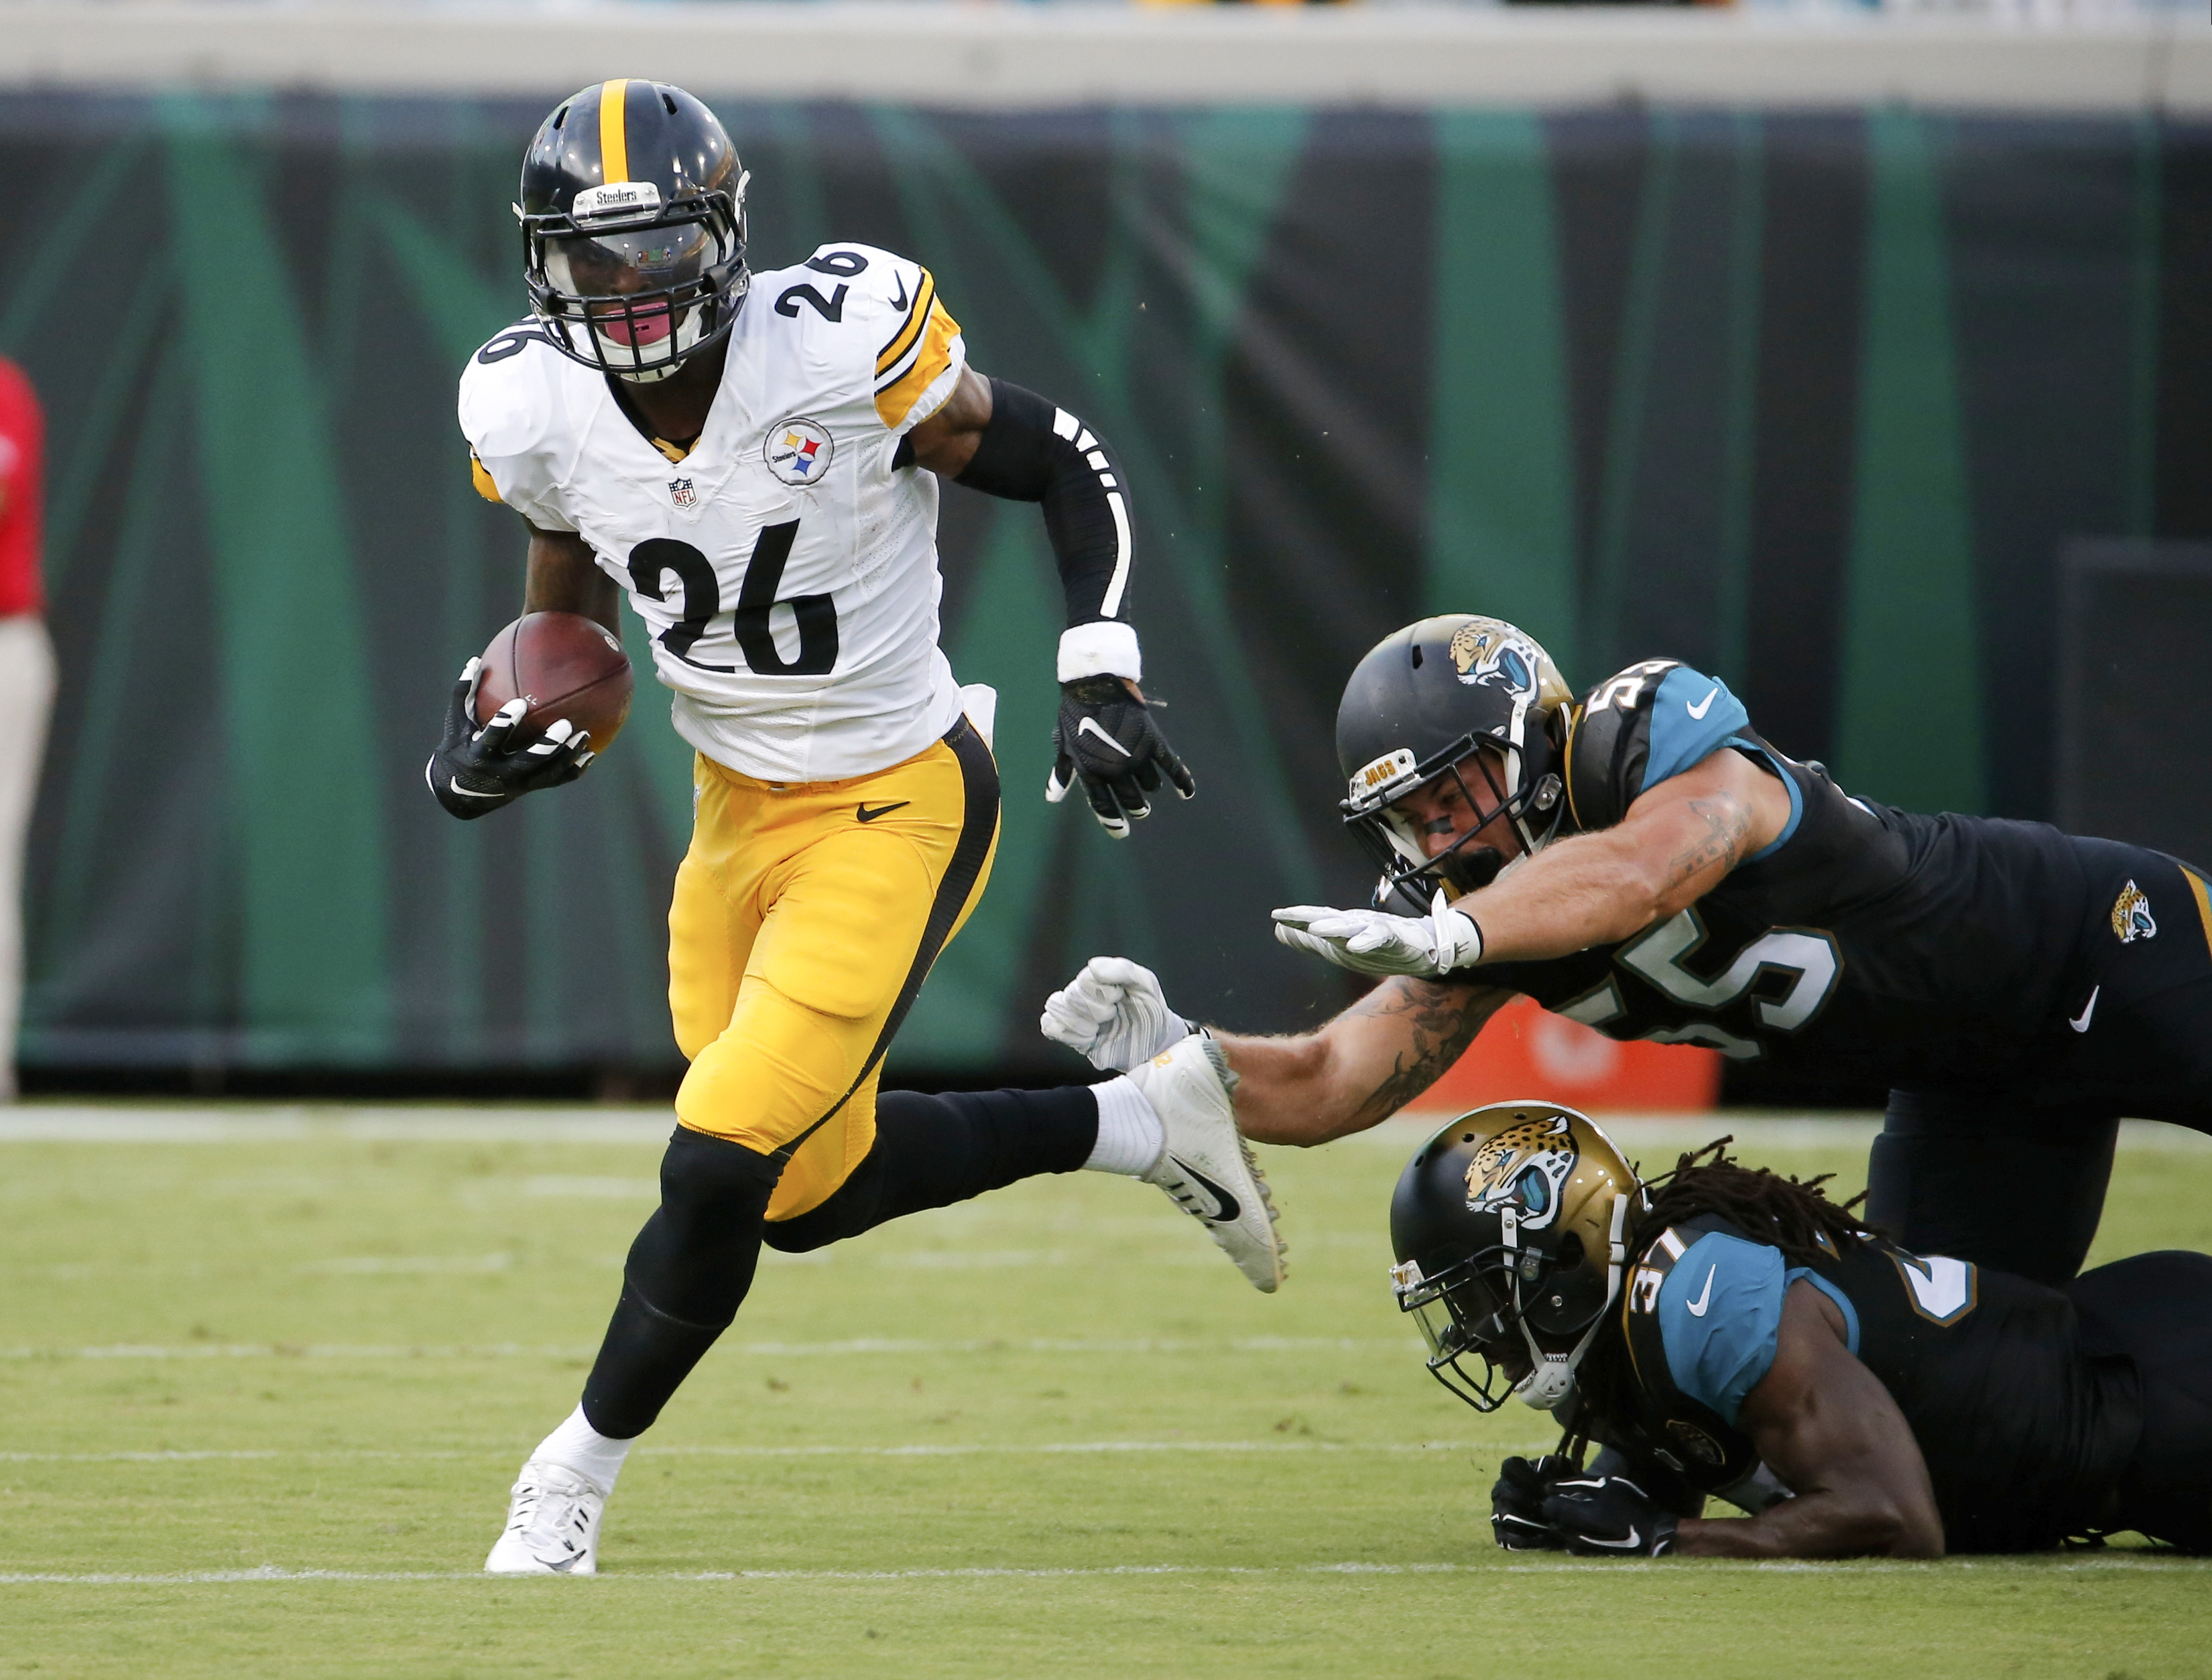 Pittsburgh Steelers running back Le'Veon Bell (26) runs past Jacksonville Jaguars linebacker Dan Skuta, top right, and strong safety Johnathan Cyprien (37) during the first half of an NFL preseason football game, Friday, Aug. 14, 2015, in Jacksonville, Fl